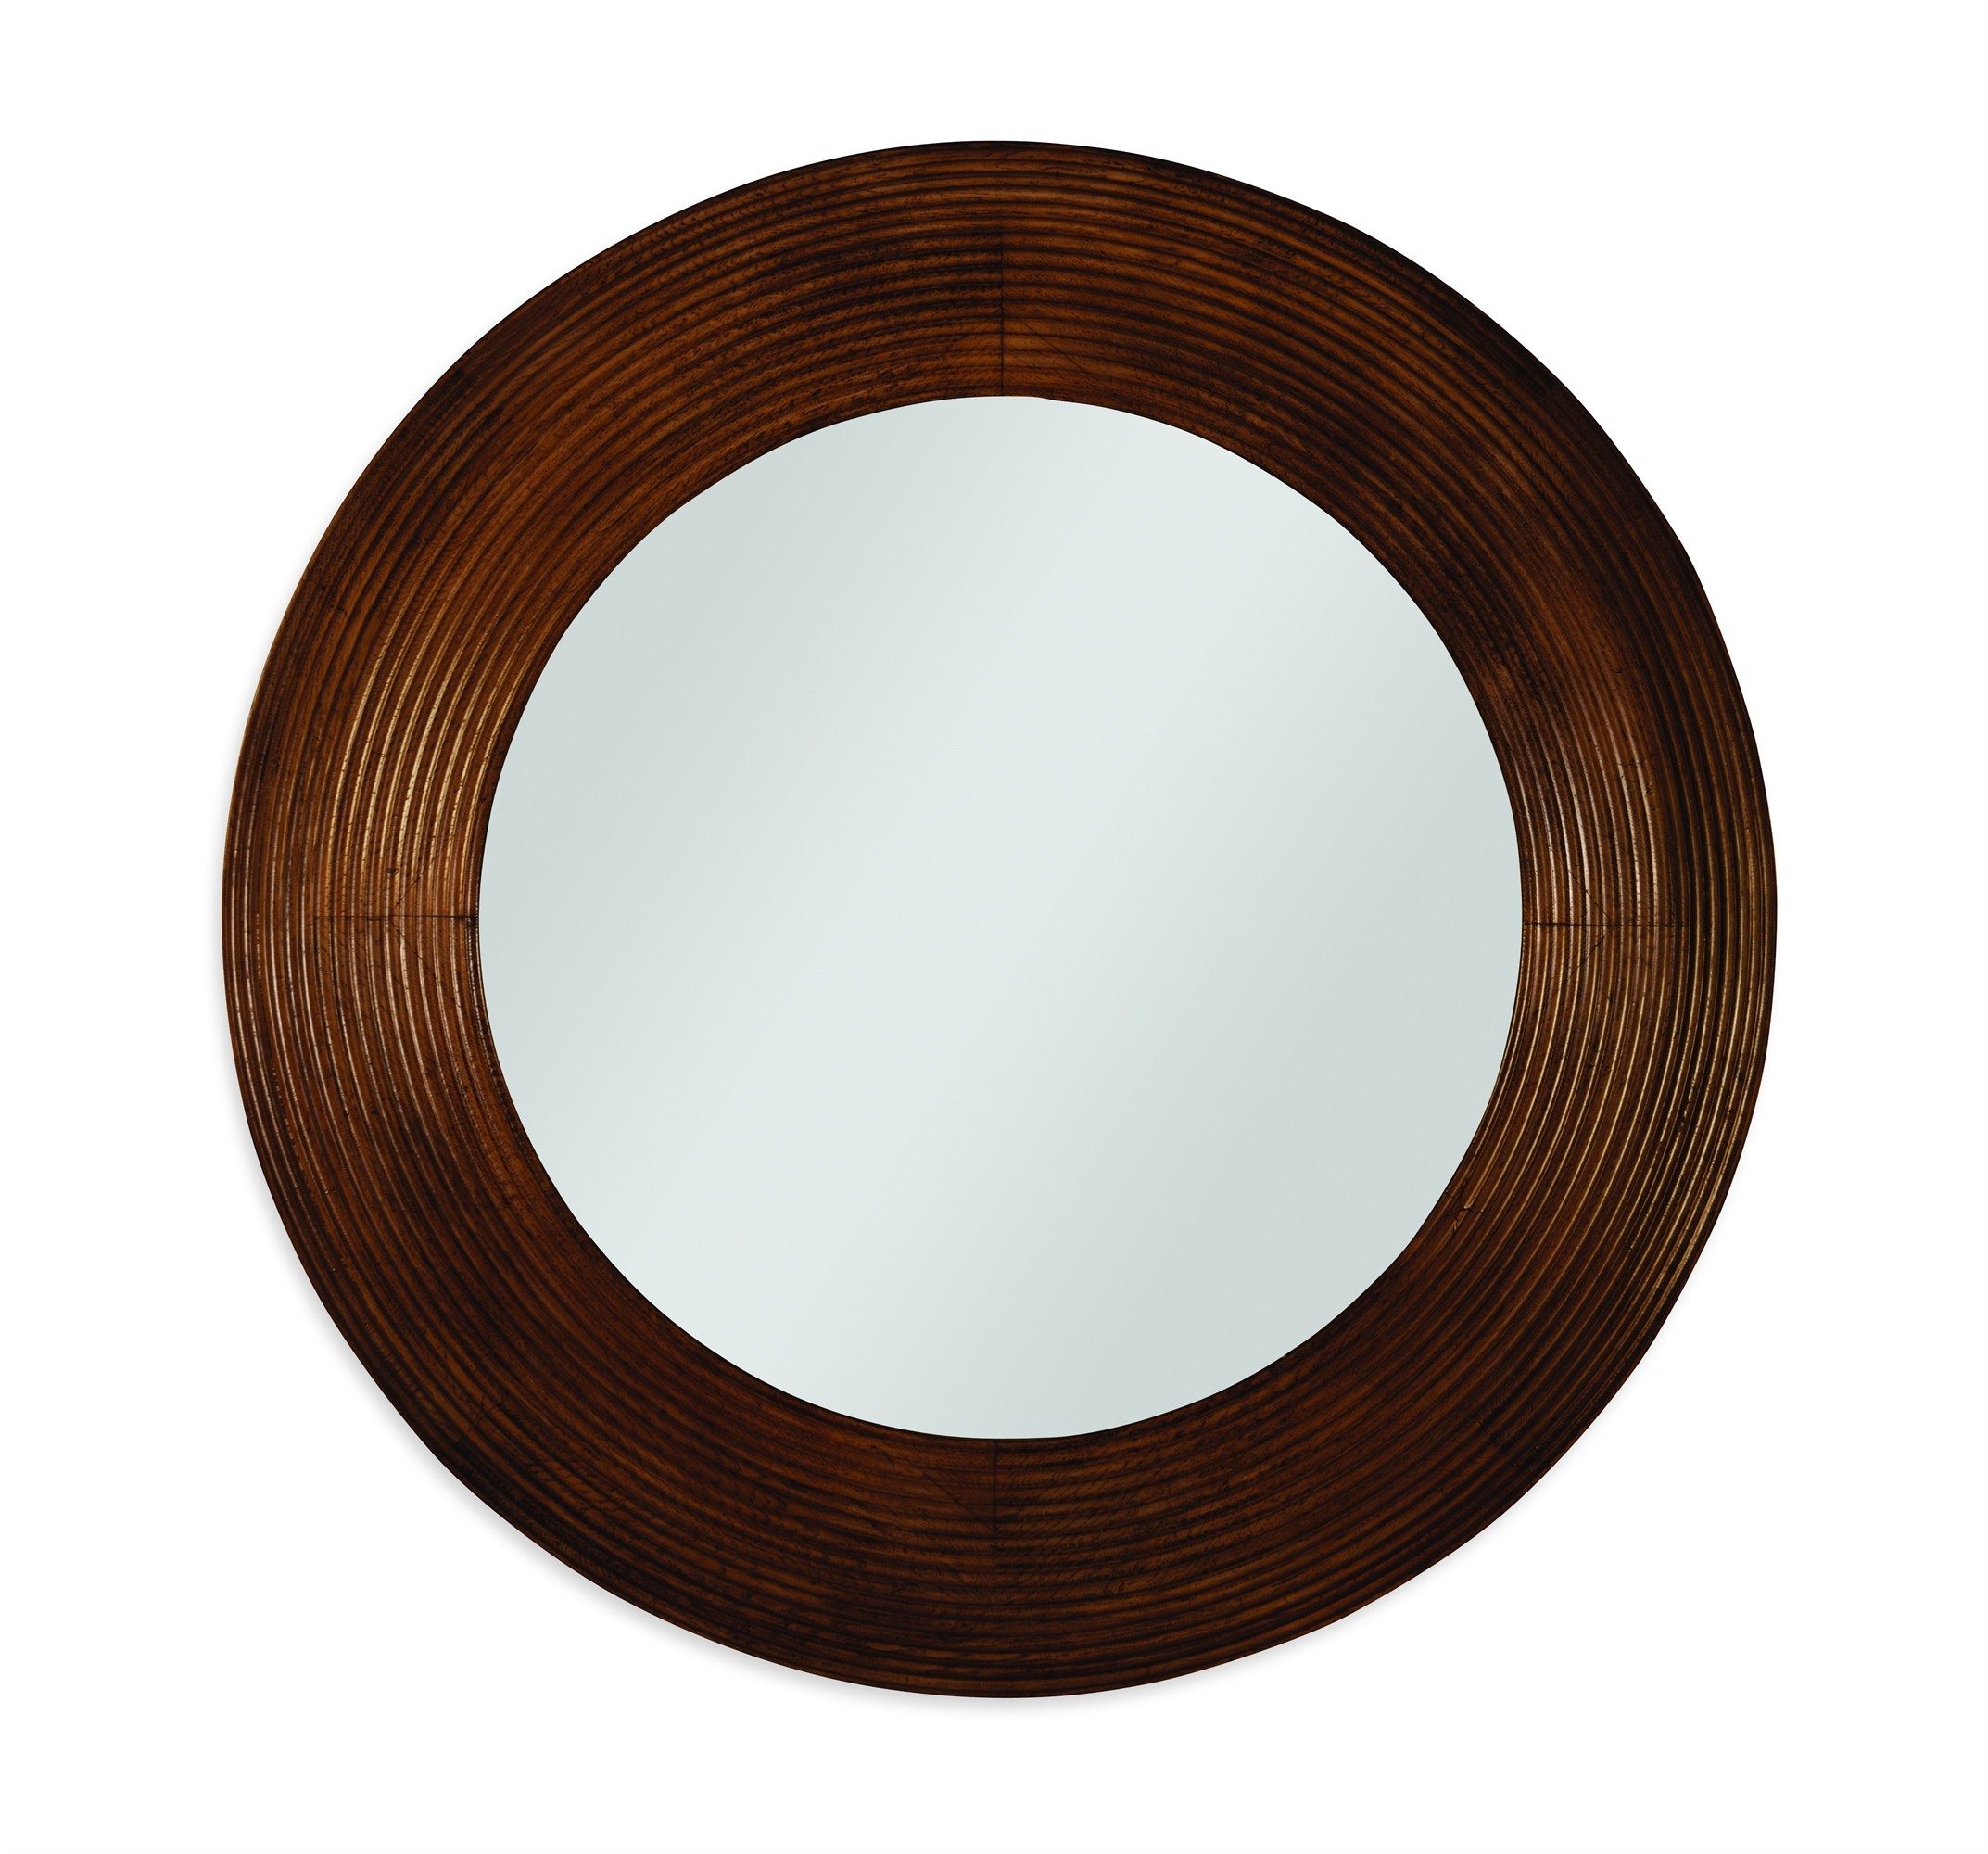 Casa Bella Reeded Mirror - Sierra Finish